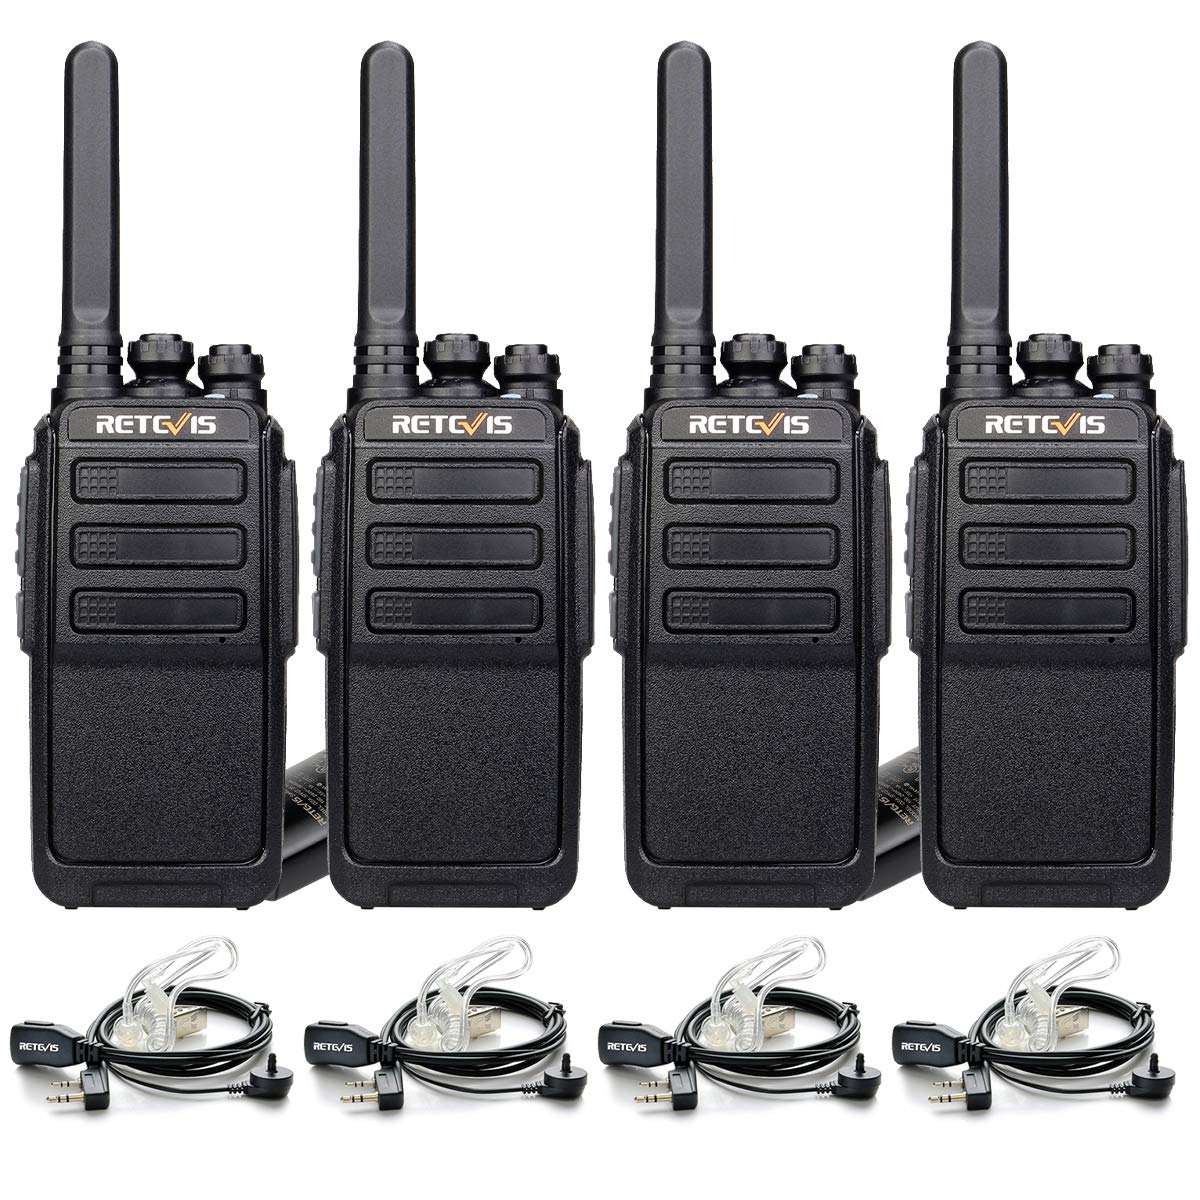 Retevis RT28 Walkie Talkies Rechargeable Long Range VOX Hand Free FRS 16 Channels Emergency Alarm 2-Way Radios with Earpiece Headset 2 Pin 4 Pack